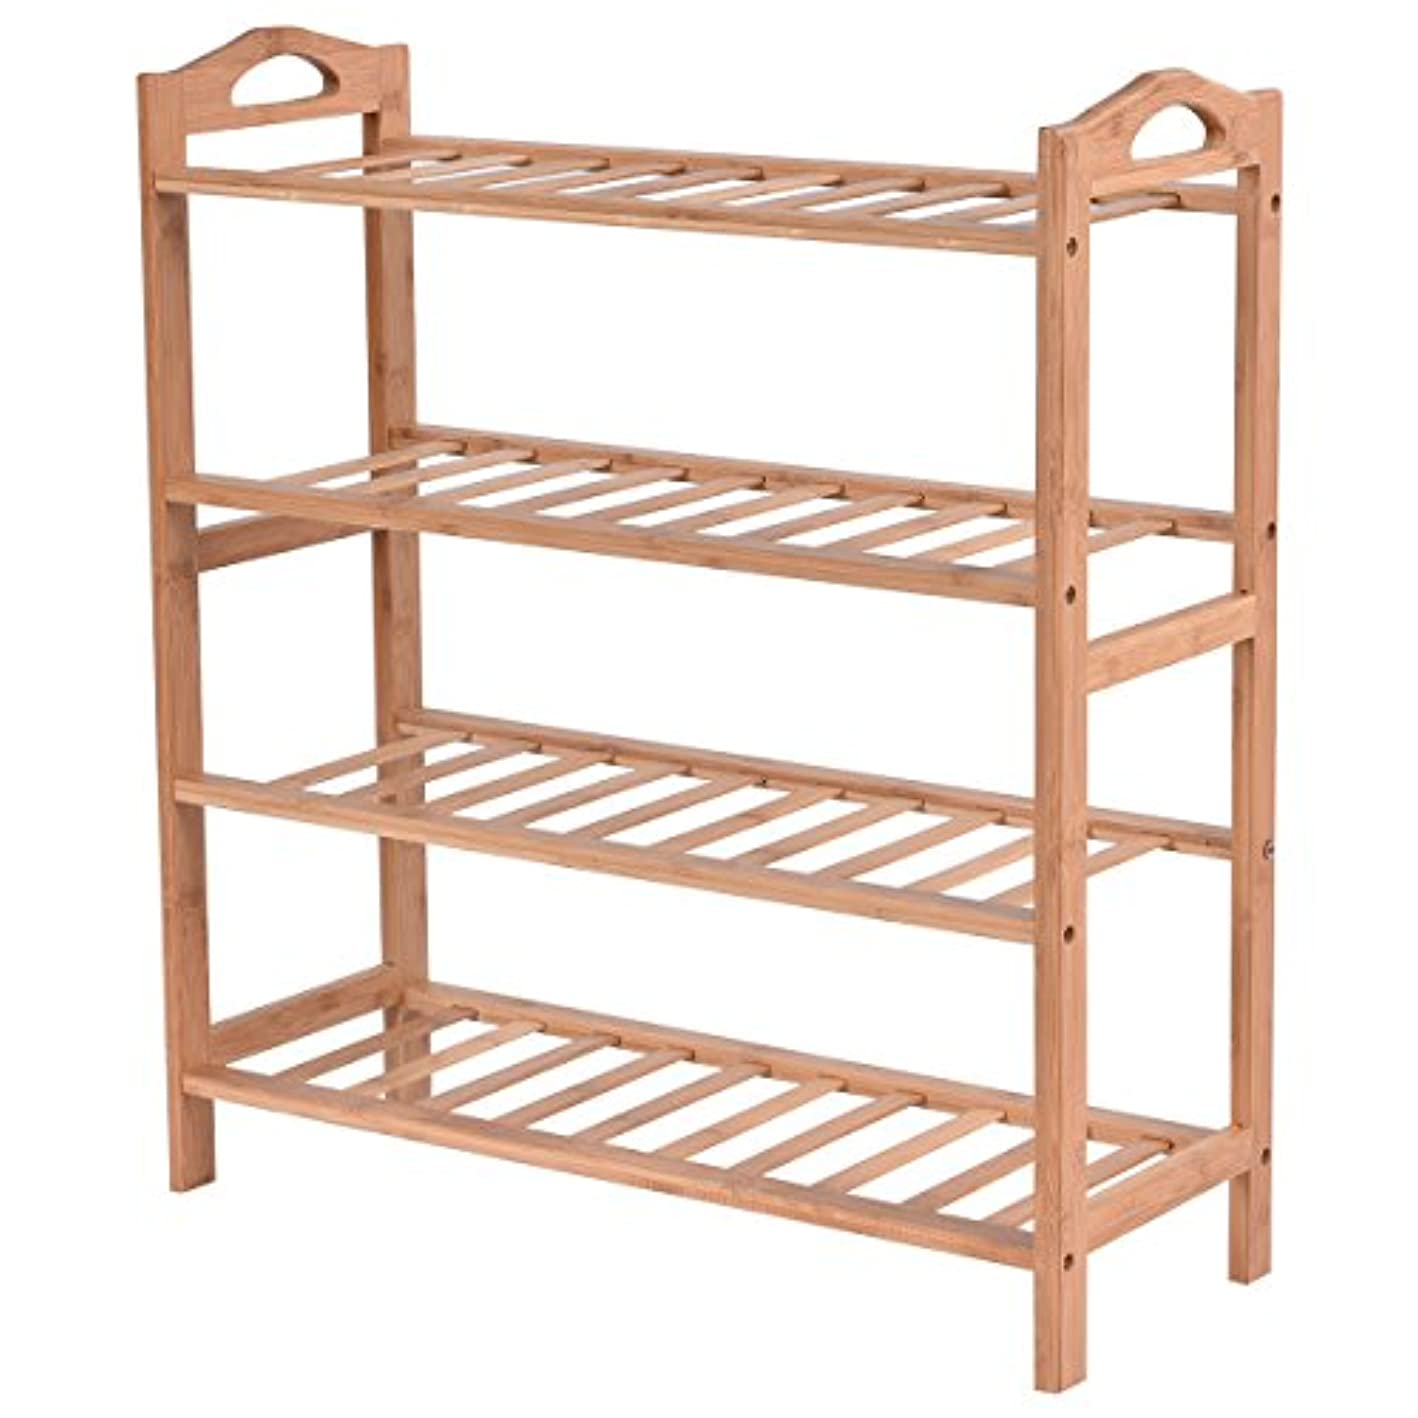 4 Tier Bamboo Shoe Rack Entryway Shelf Storage Shoe Organizer New